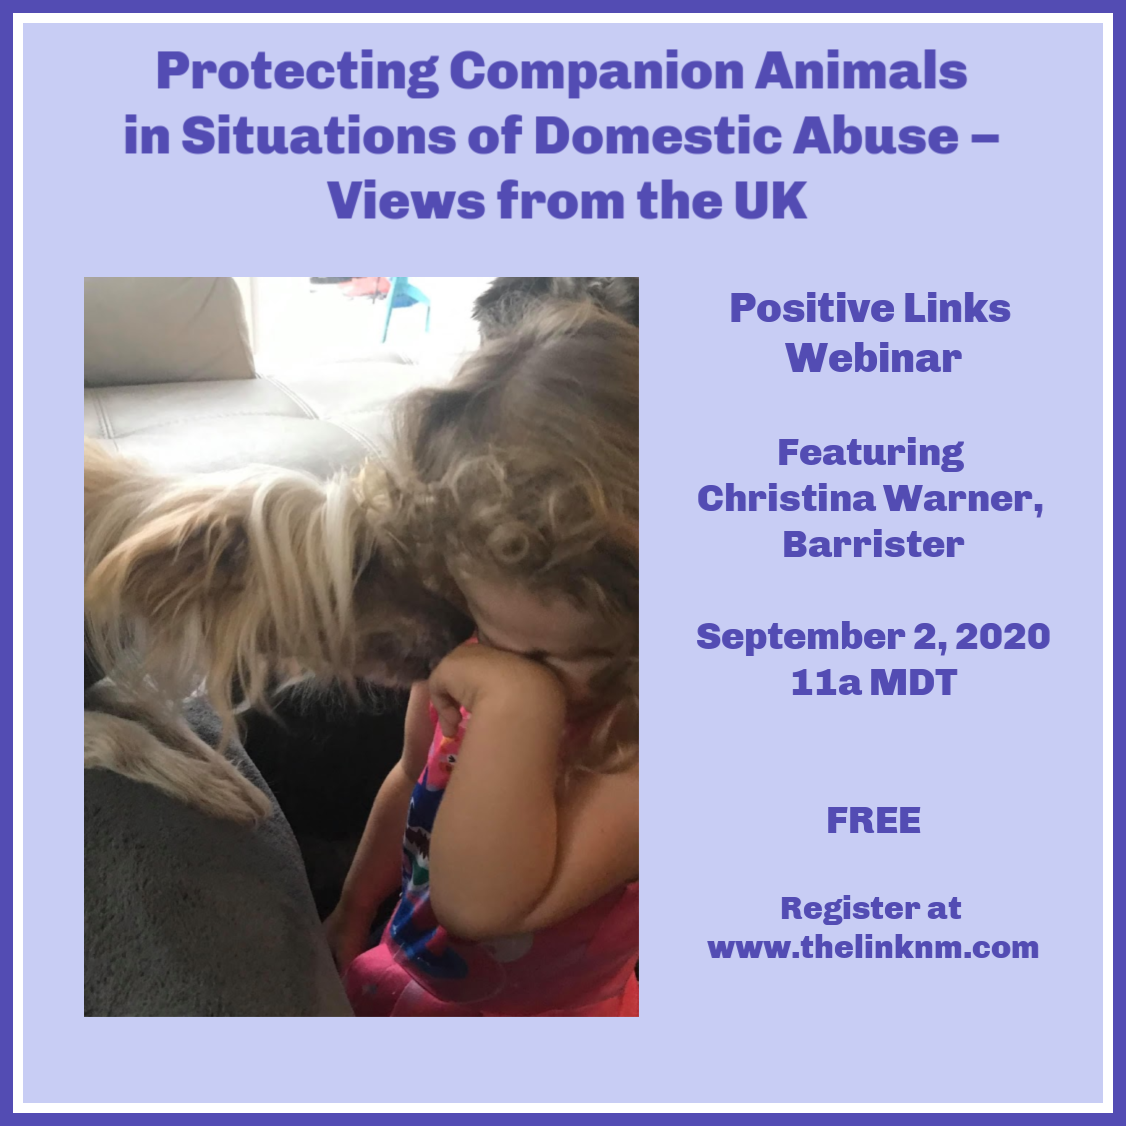 Protecting Companion Animals in Situations of Domestic Abuse - Views from the UK Positive Links Webinar Featuring Christina Warner, Barrister September 2, 2020 11am MDT FREE Register at www.thelinknm.com